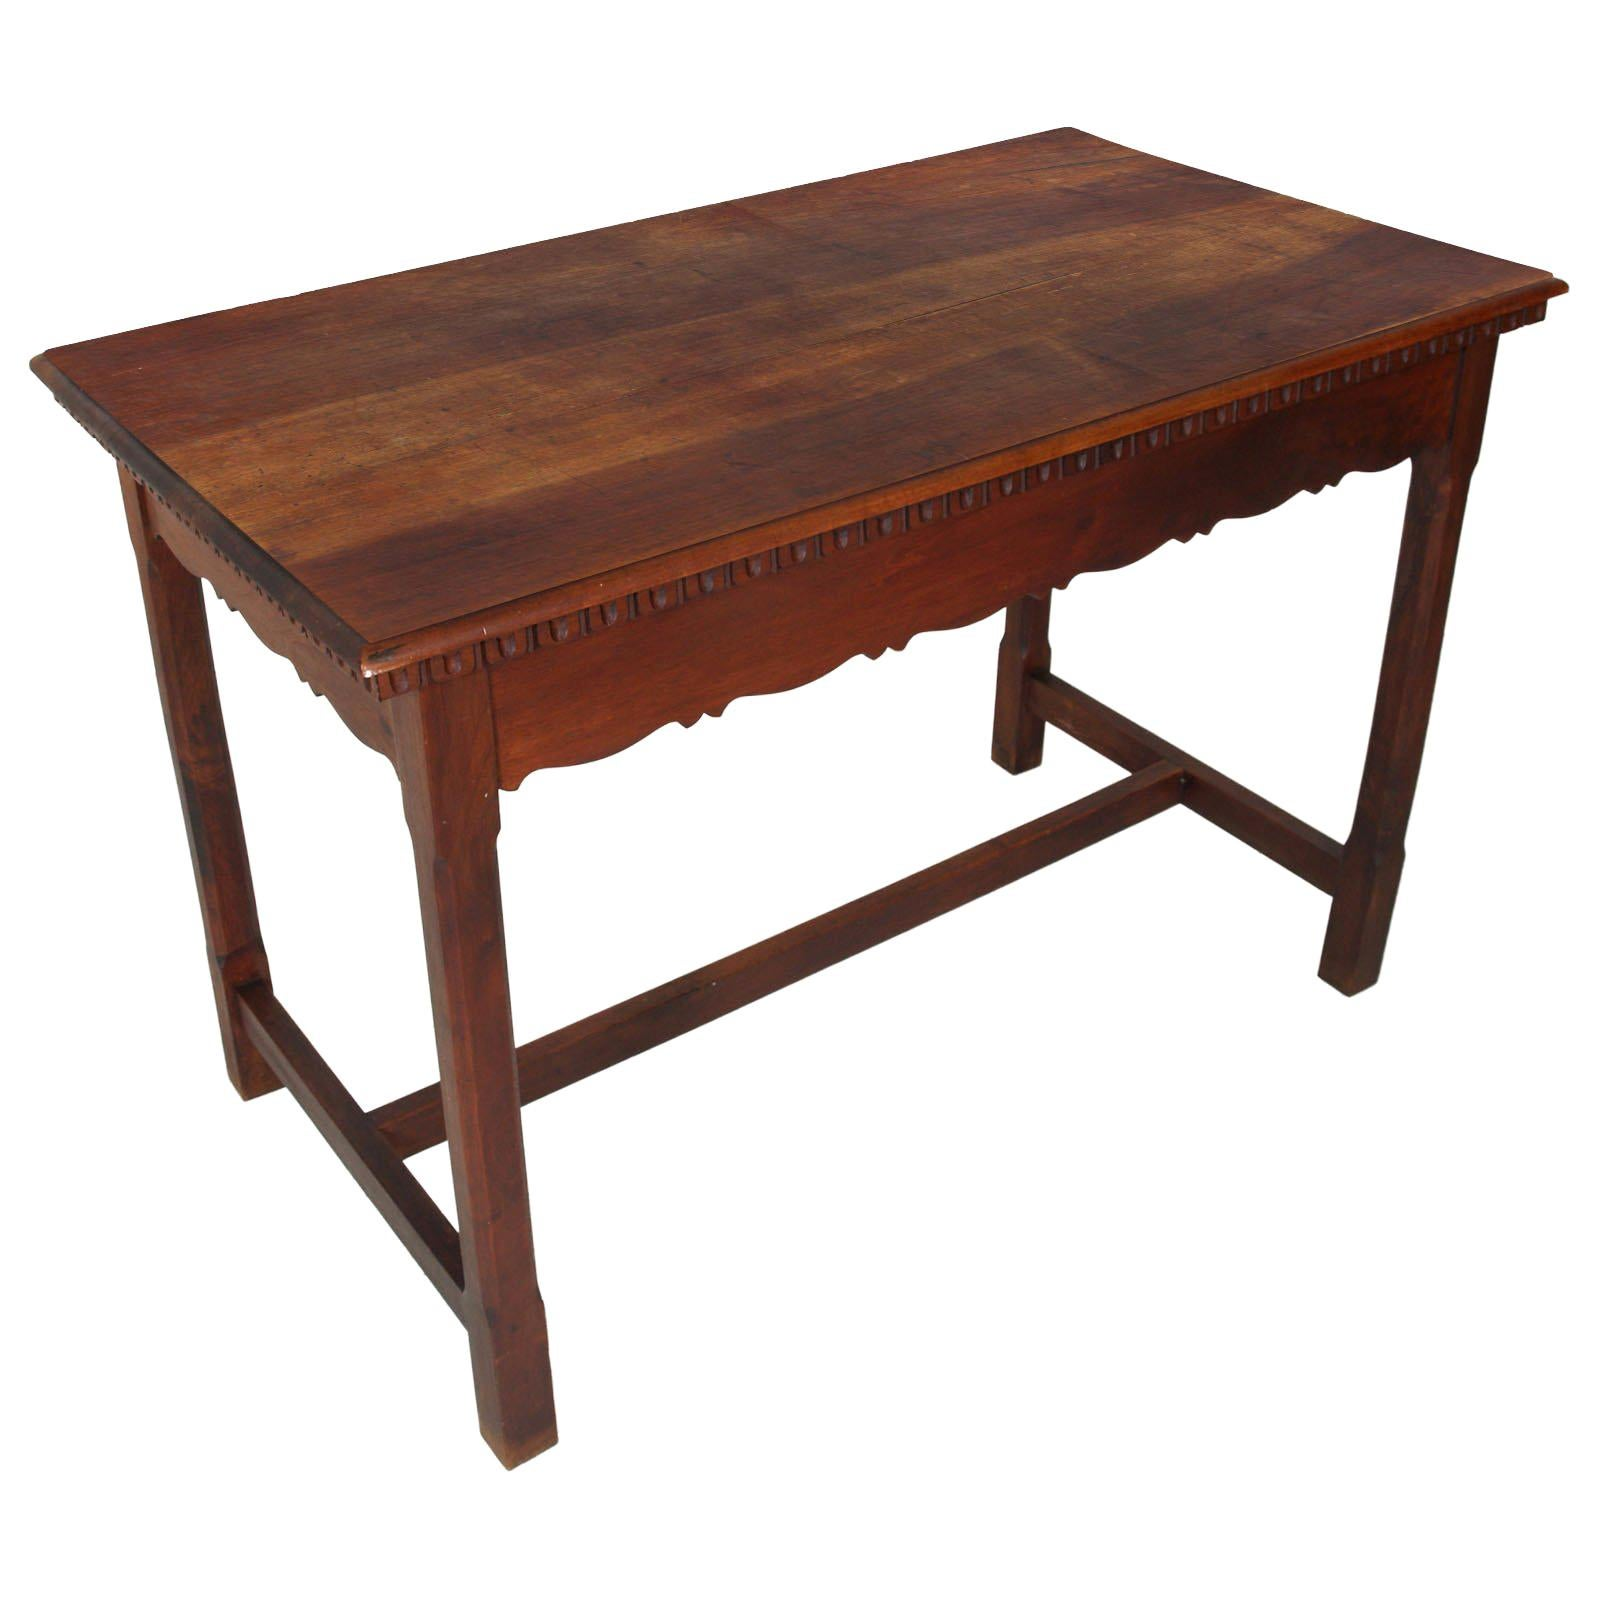 1900s Wiener Occasional table or writing desk in Walnut Restored wax Polished